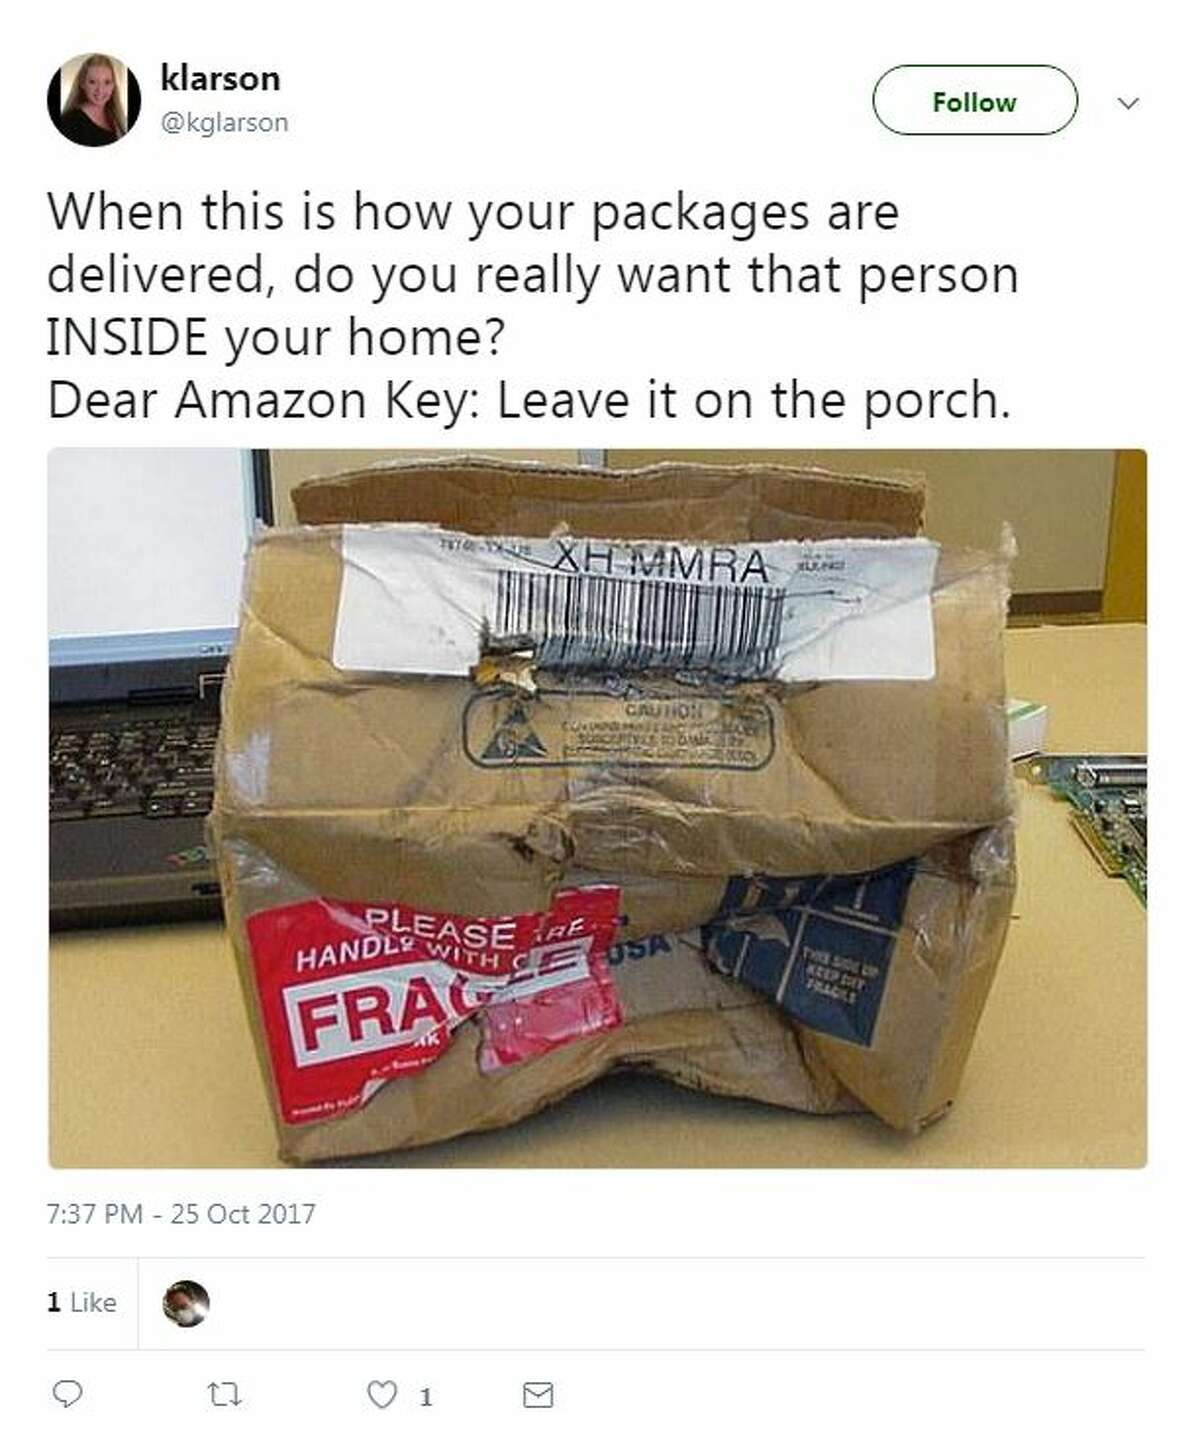 @kglarson When this is how your packages are delivered, do you really want that person INSIDE your home? Dear Amazon Key: Leave it on the porch.